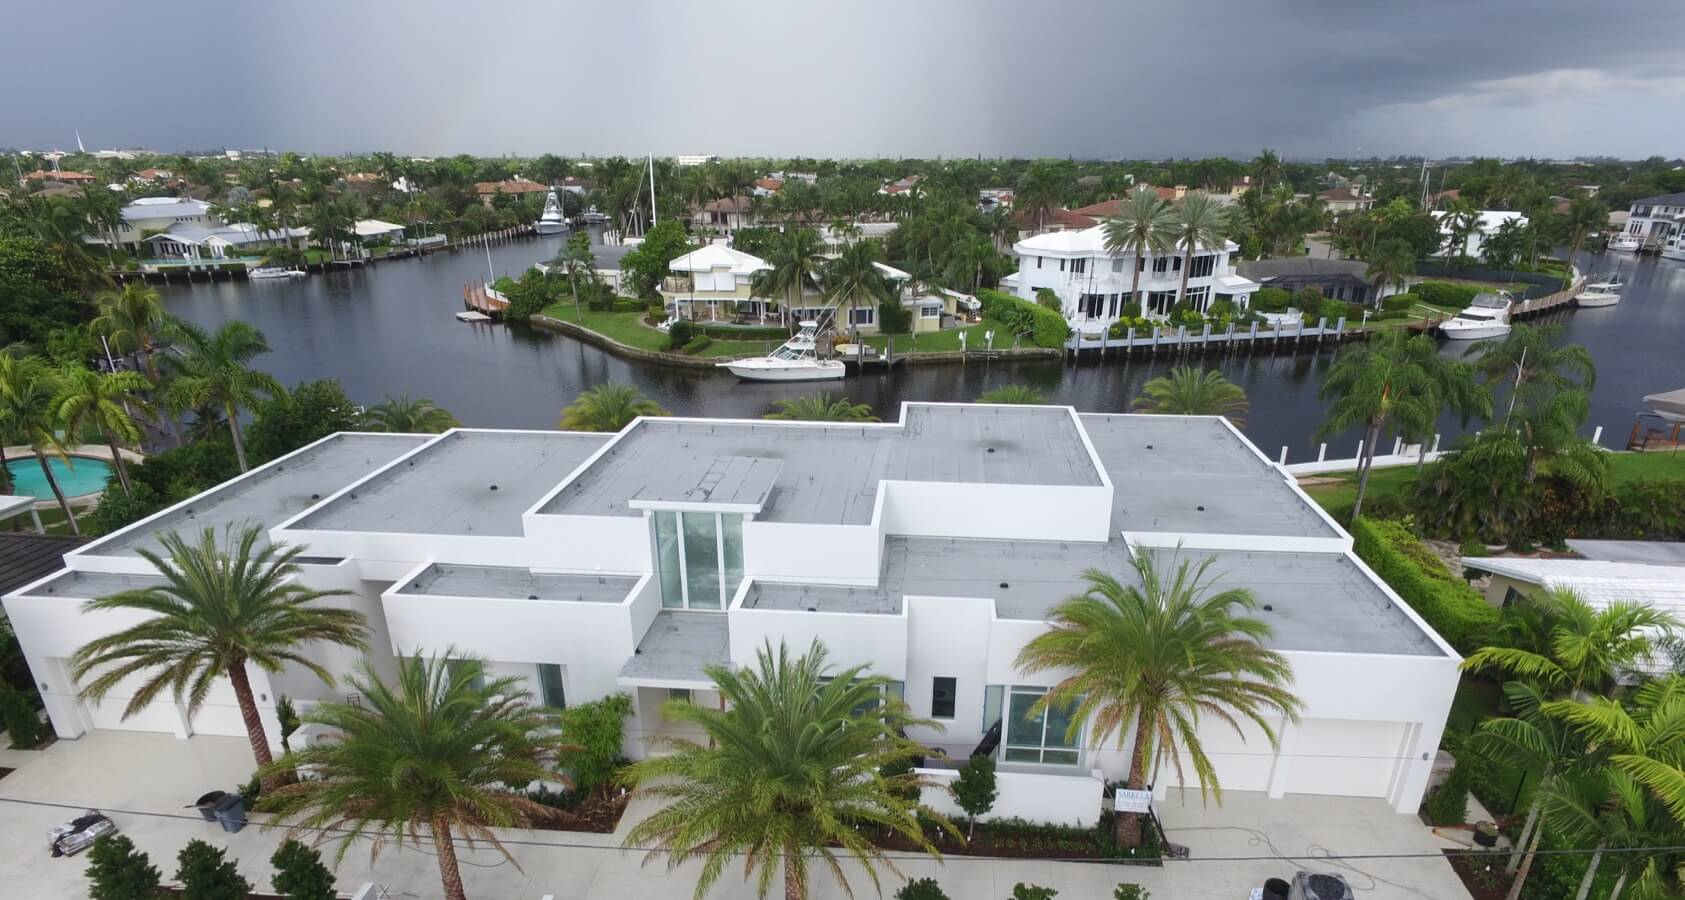 Residential Flat Roofing Miami 1